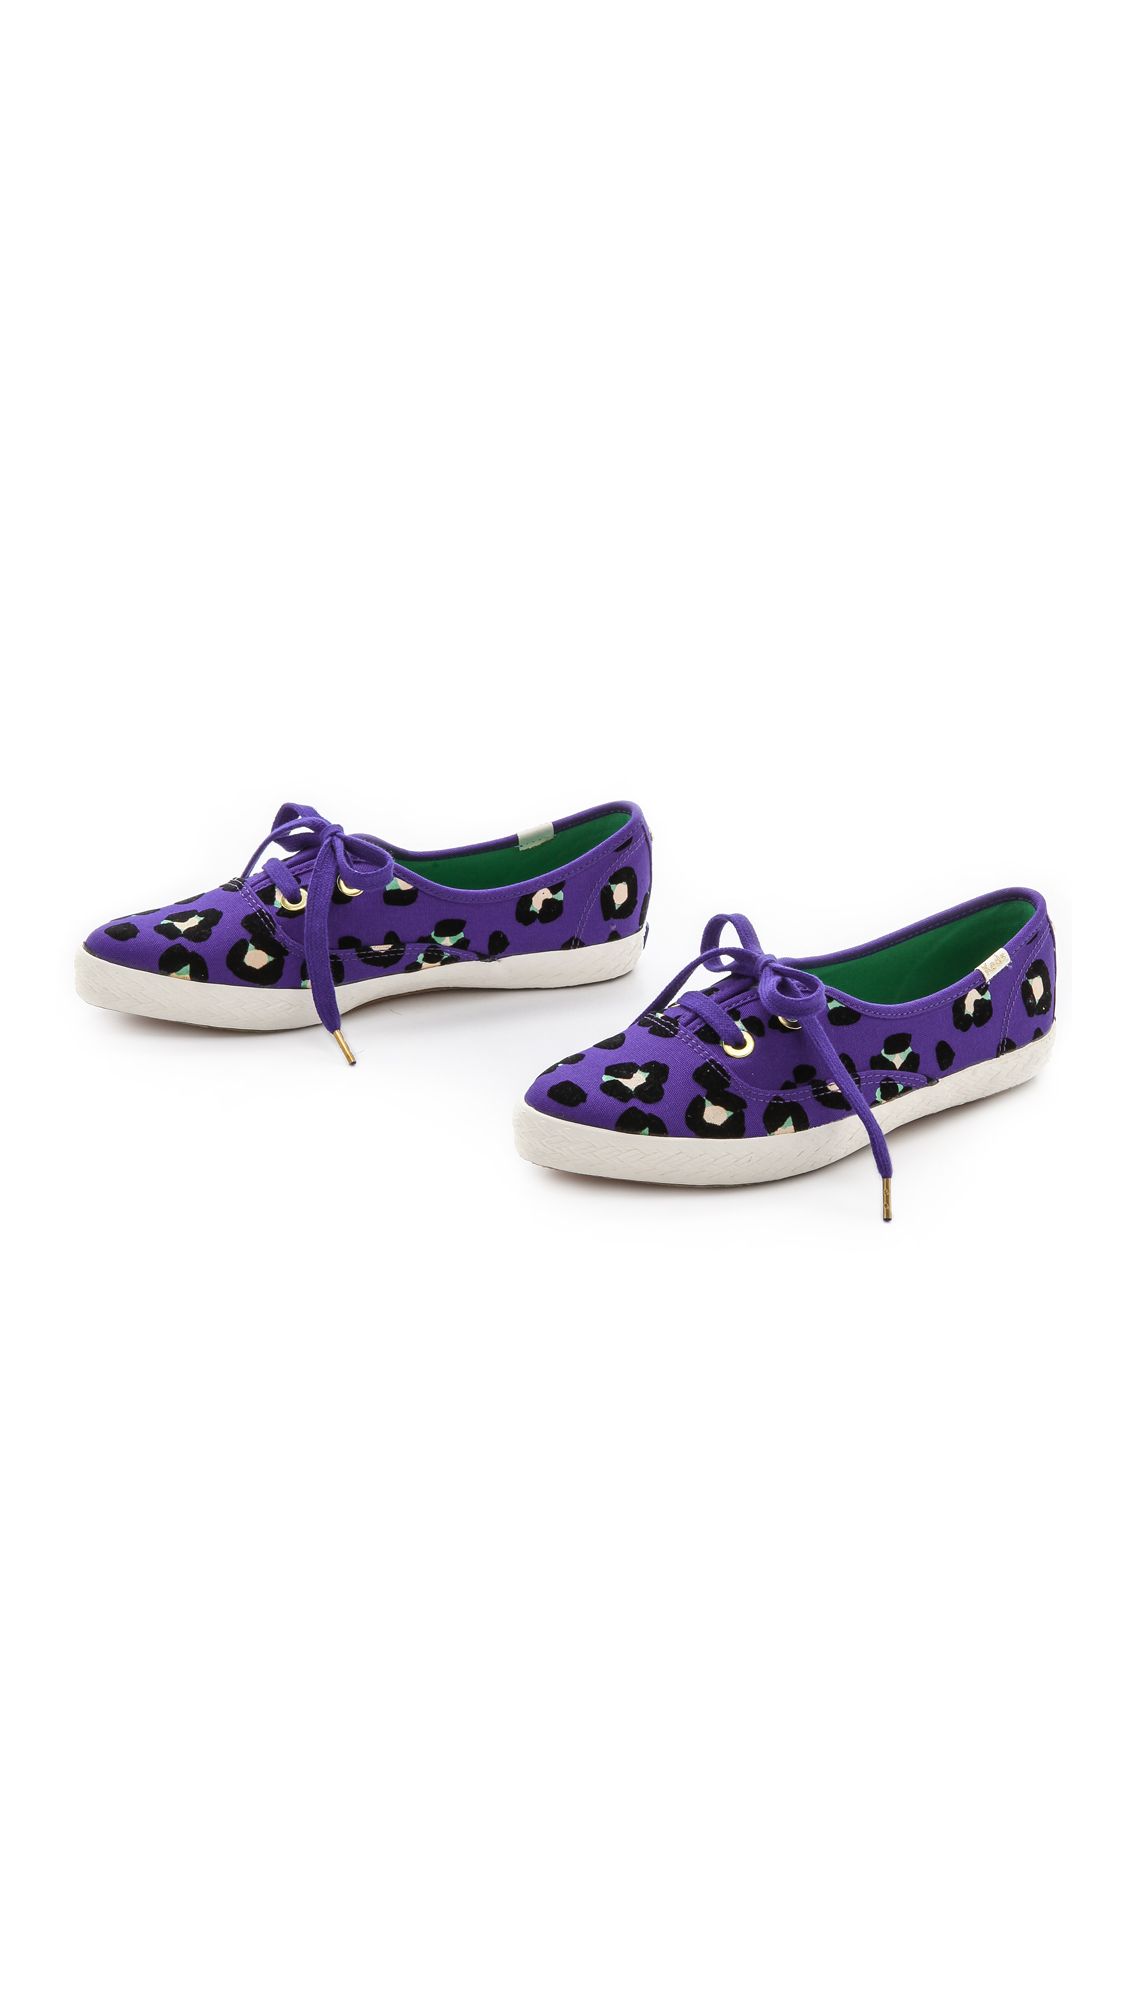 73f55897f707 Kate Spade New York Keds for Kate Spade Pointer Cheetah Sneakers ...